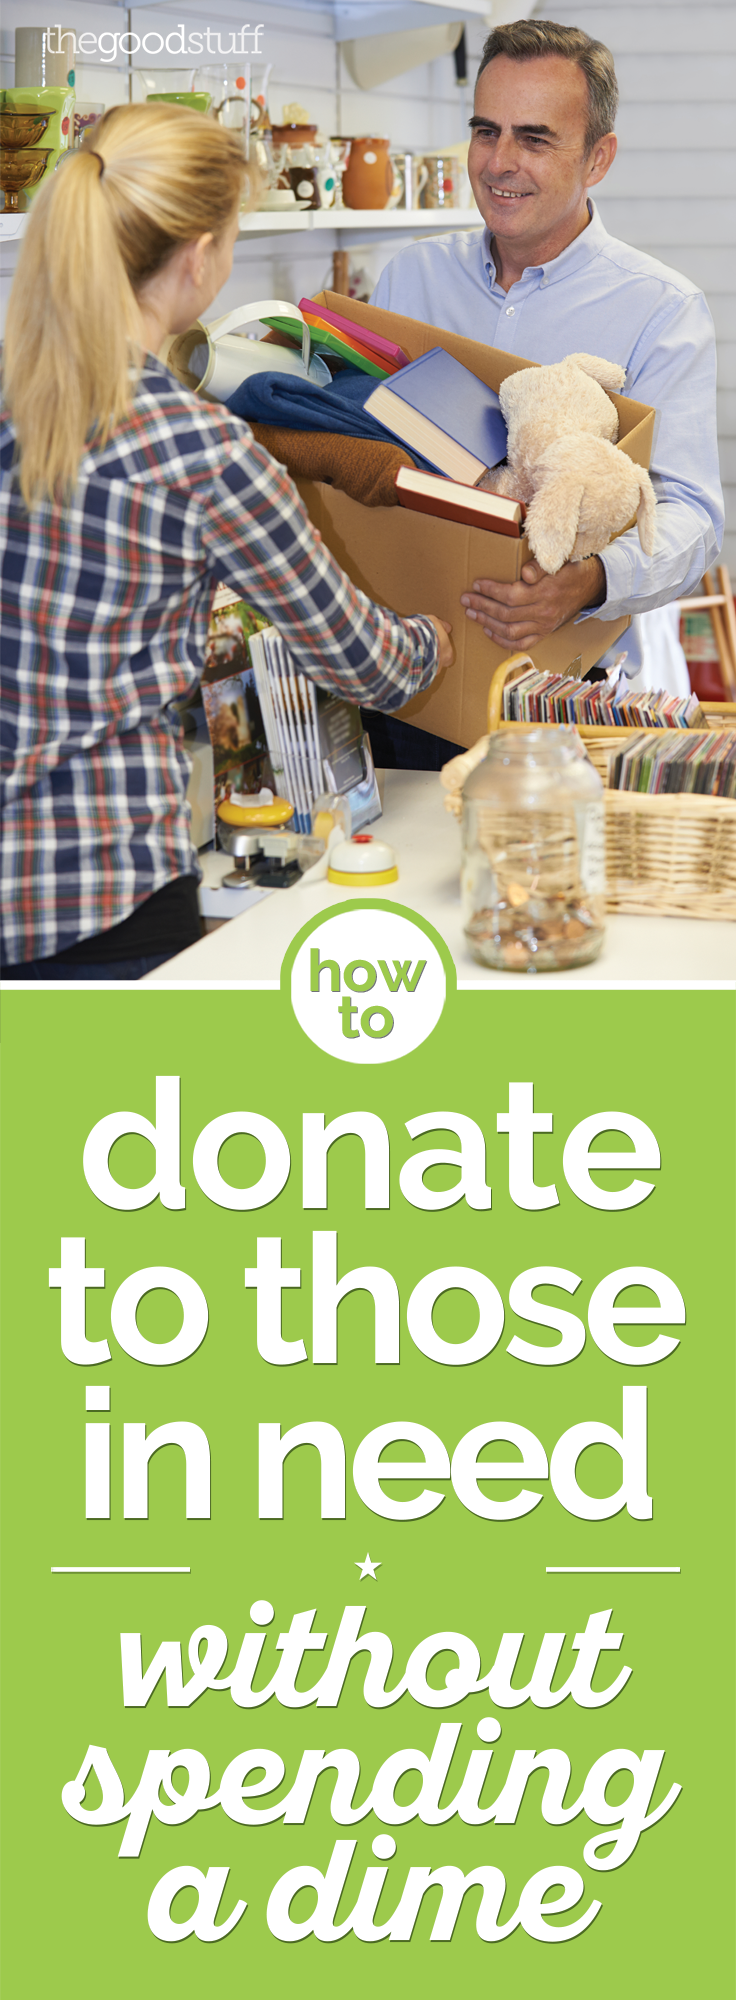 How to Donate to Those in Need Without Spending a Dime | thegoodstuff